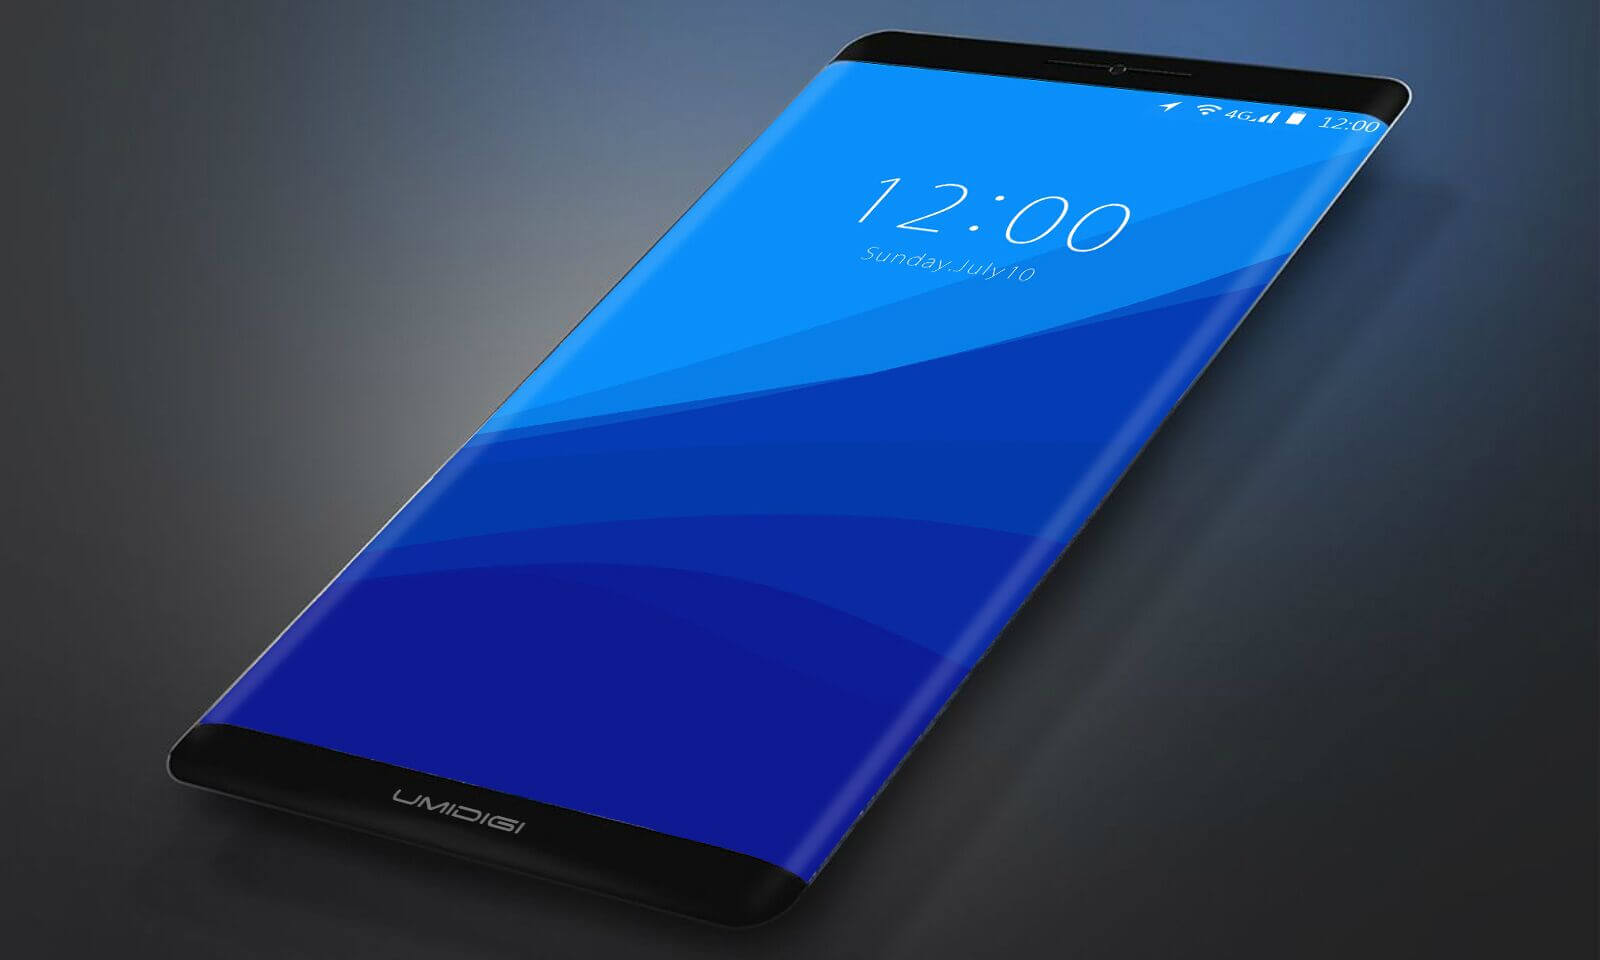 umidigi extreme version